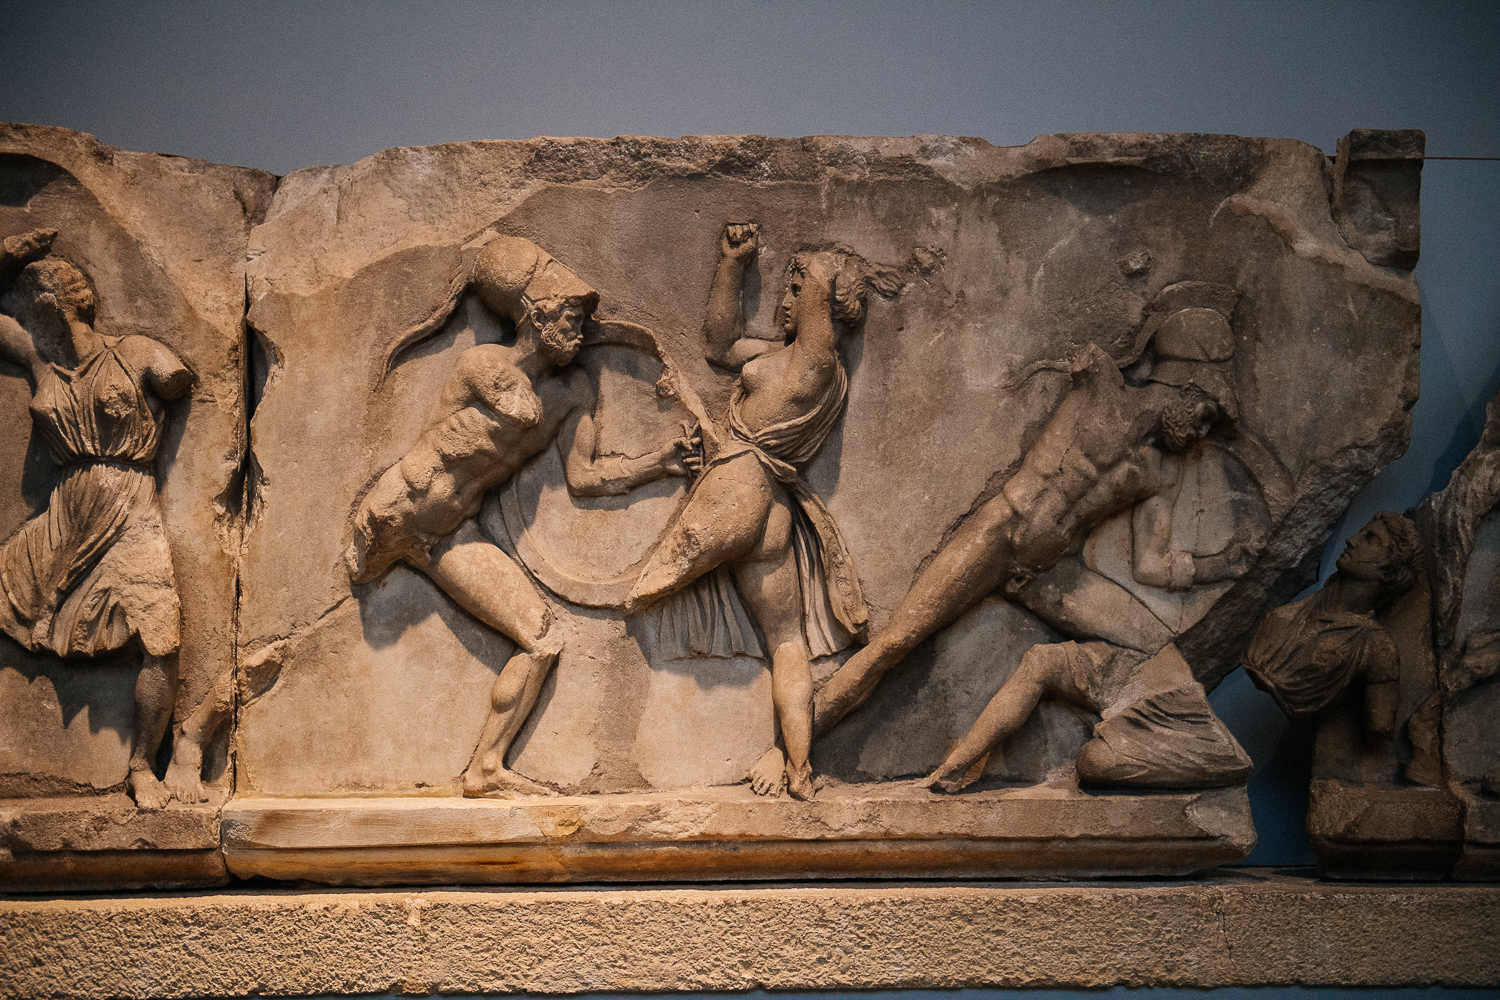 The engravings show different battle scenes of the Amazonomachy. In one of them, not this one, Hecules can be seen grabbing queen Hippolyta by the hair. Unfortunately I missed that slab.